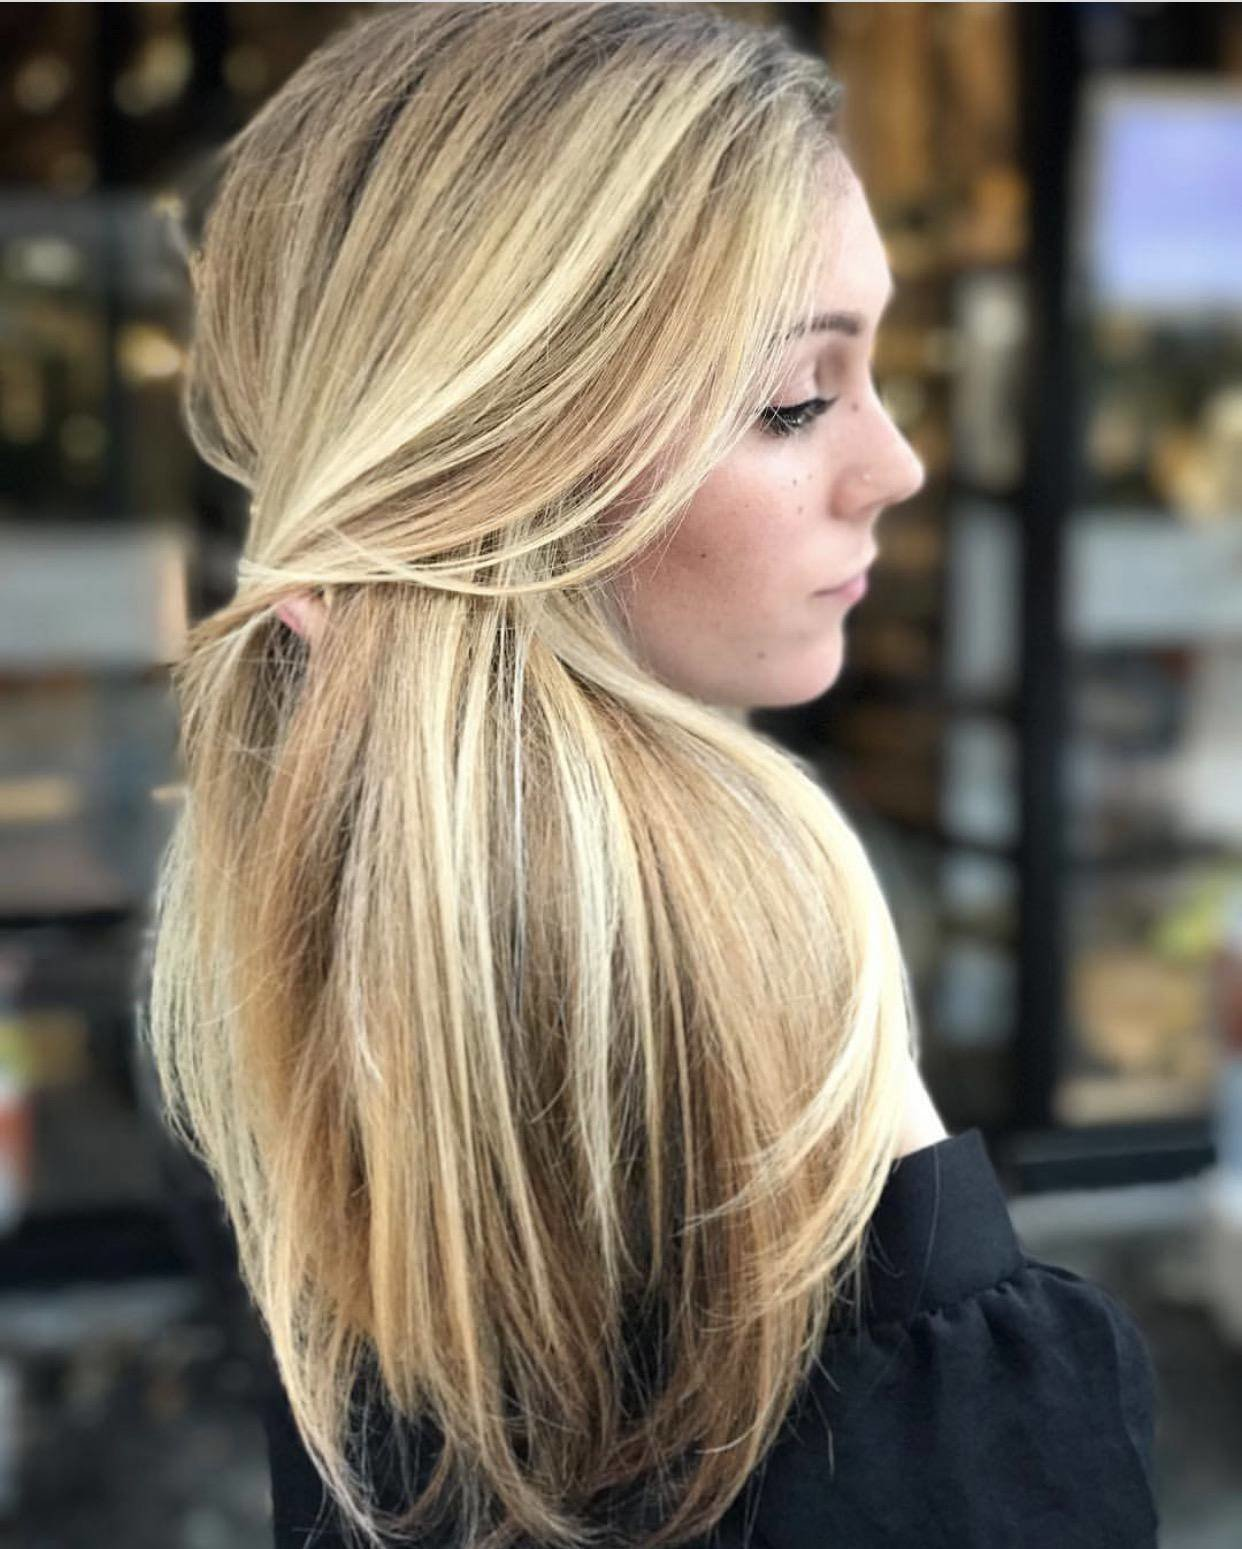 The Best Salon Spa Miami Hair Styling Hair Extensions Nails Pictures